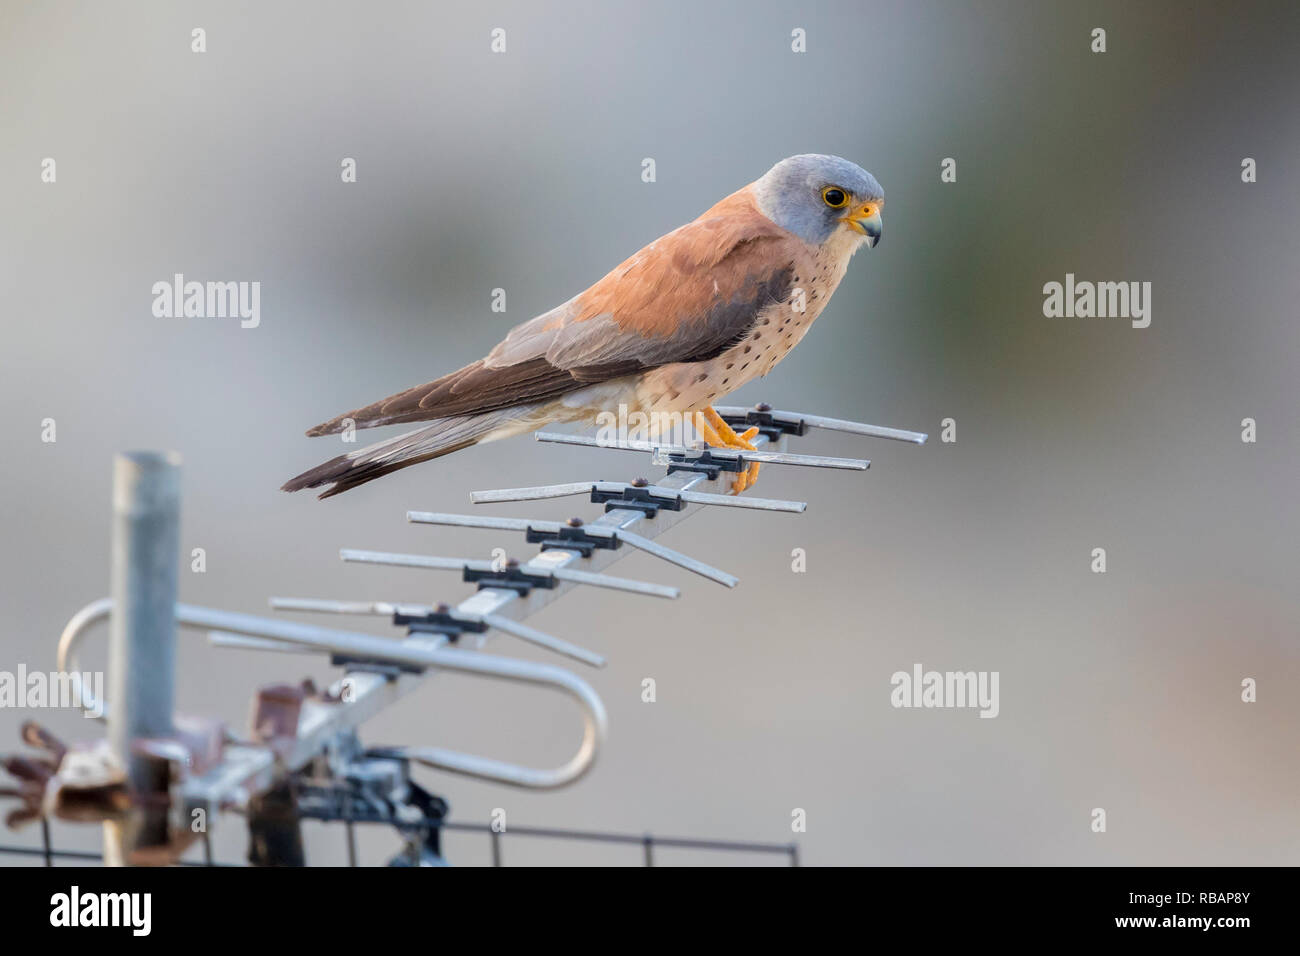 Lesser Kestrel (Falco naumanni), adult male perched on an antenna in Matera Stock Photo